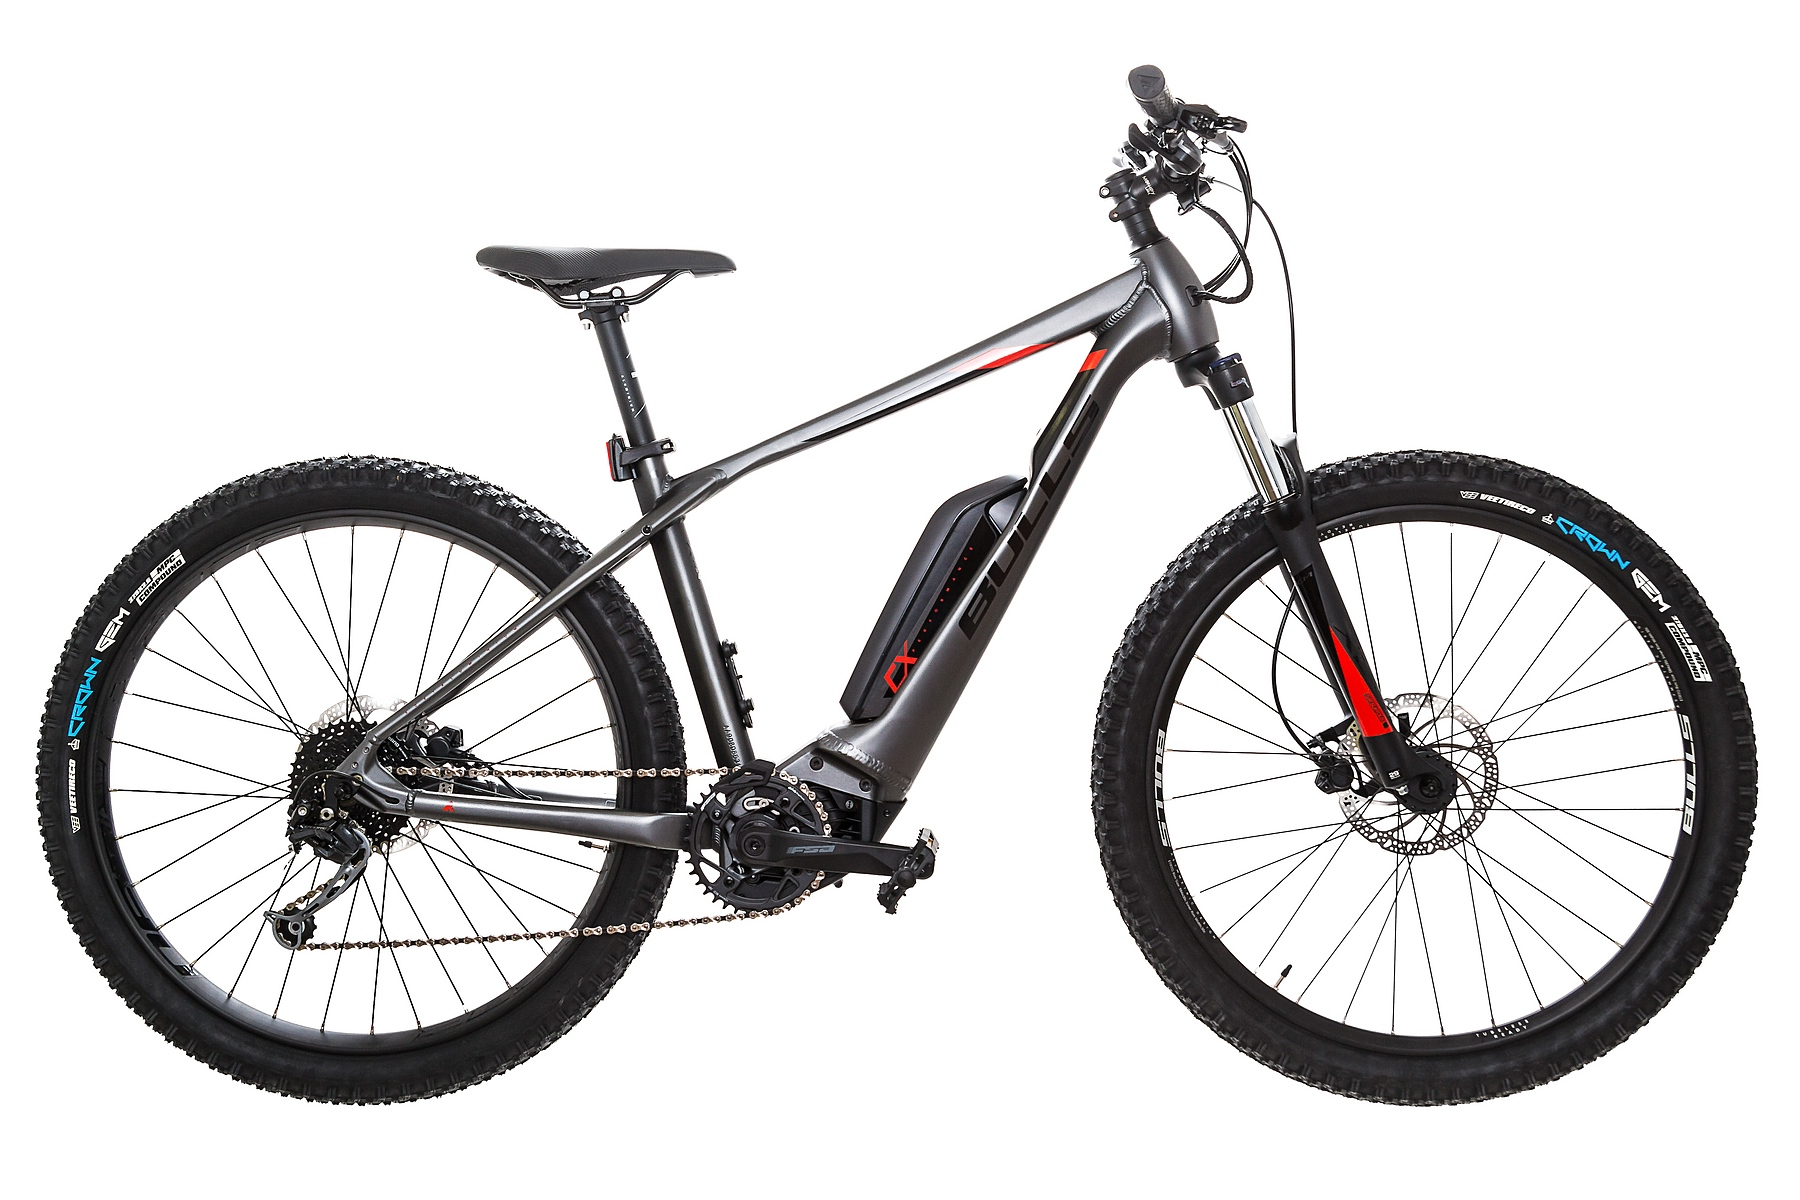 BULLS Copperhead E2 27,5 400 Wh - black chrome - 2020